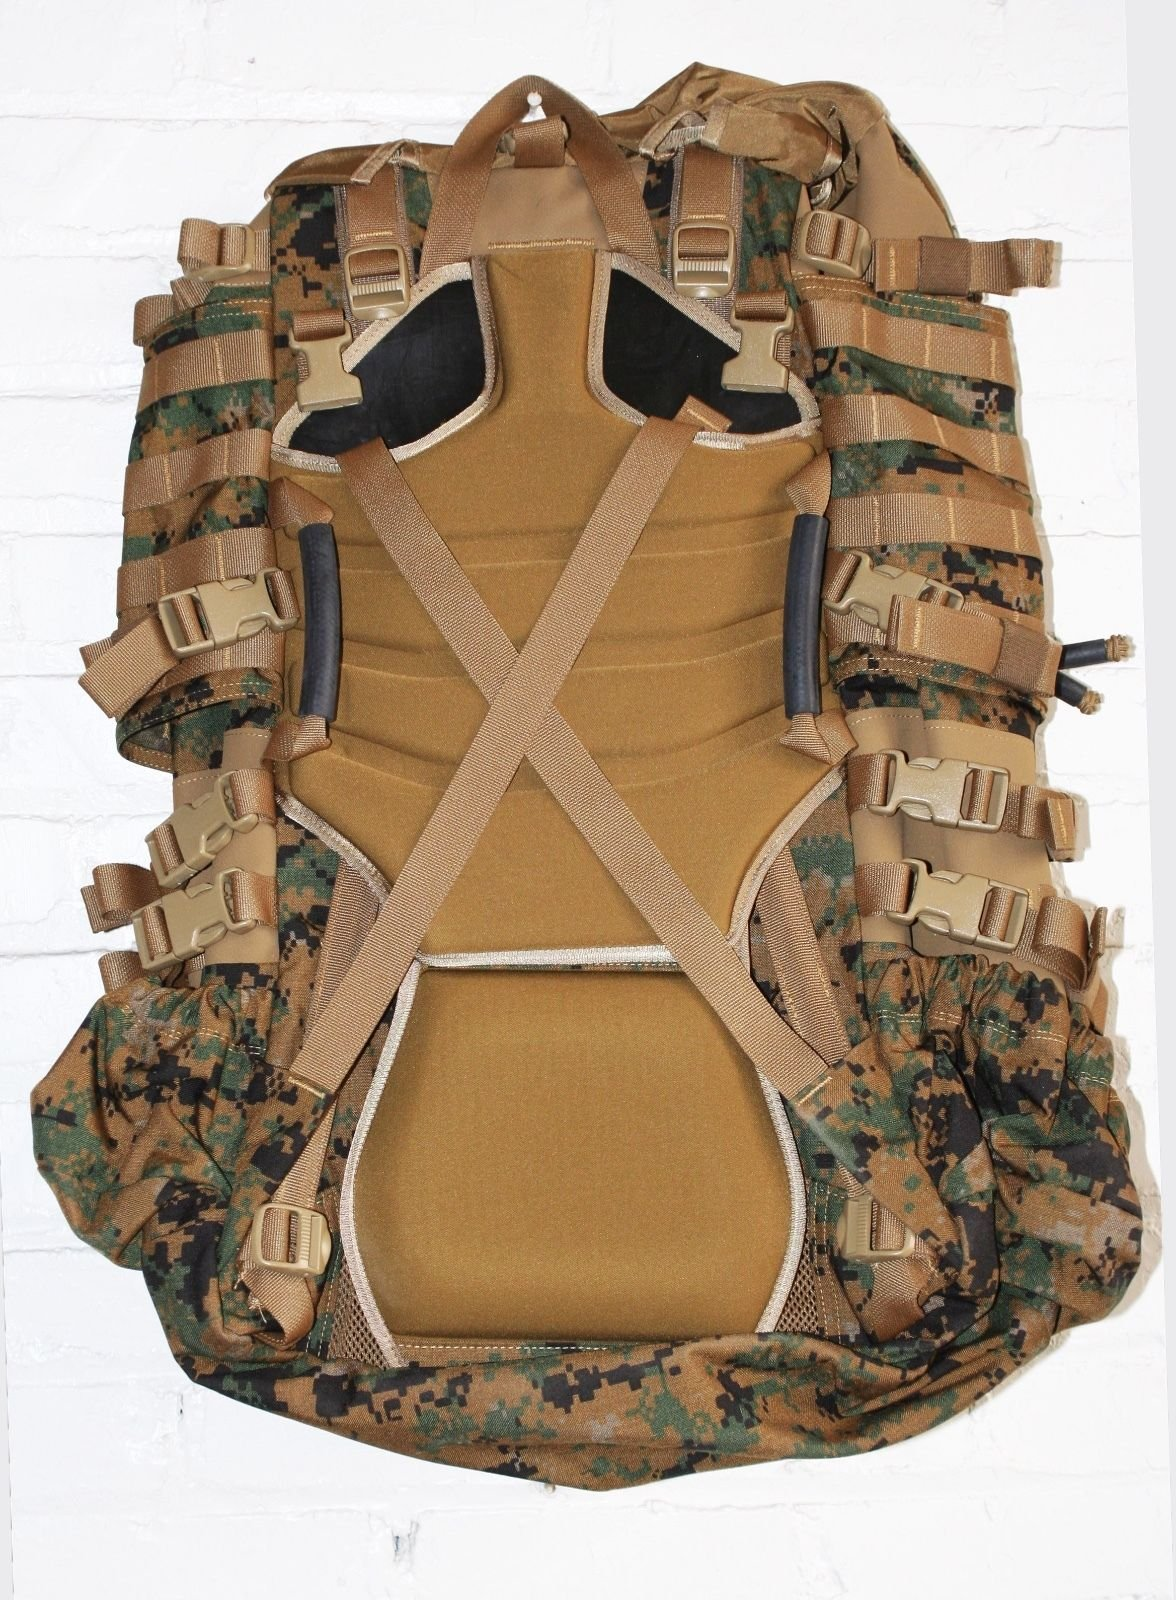 USMC Field Pack, MARPAT Main Pack, Woodland Digital Camouflage, Spare Part, Component of Improved Load Bearing Equipment (ILBE) by Arc'teryx (Image #2)